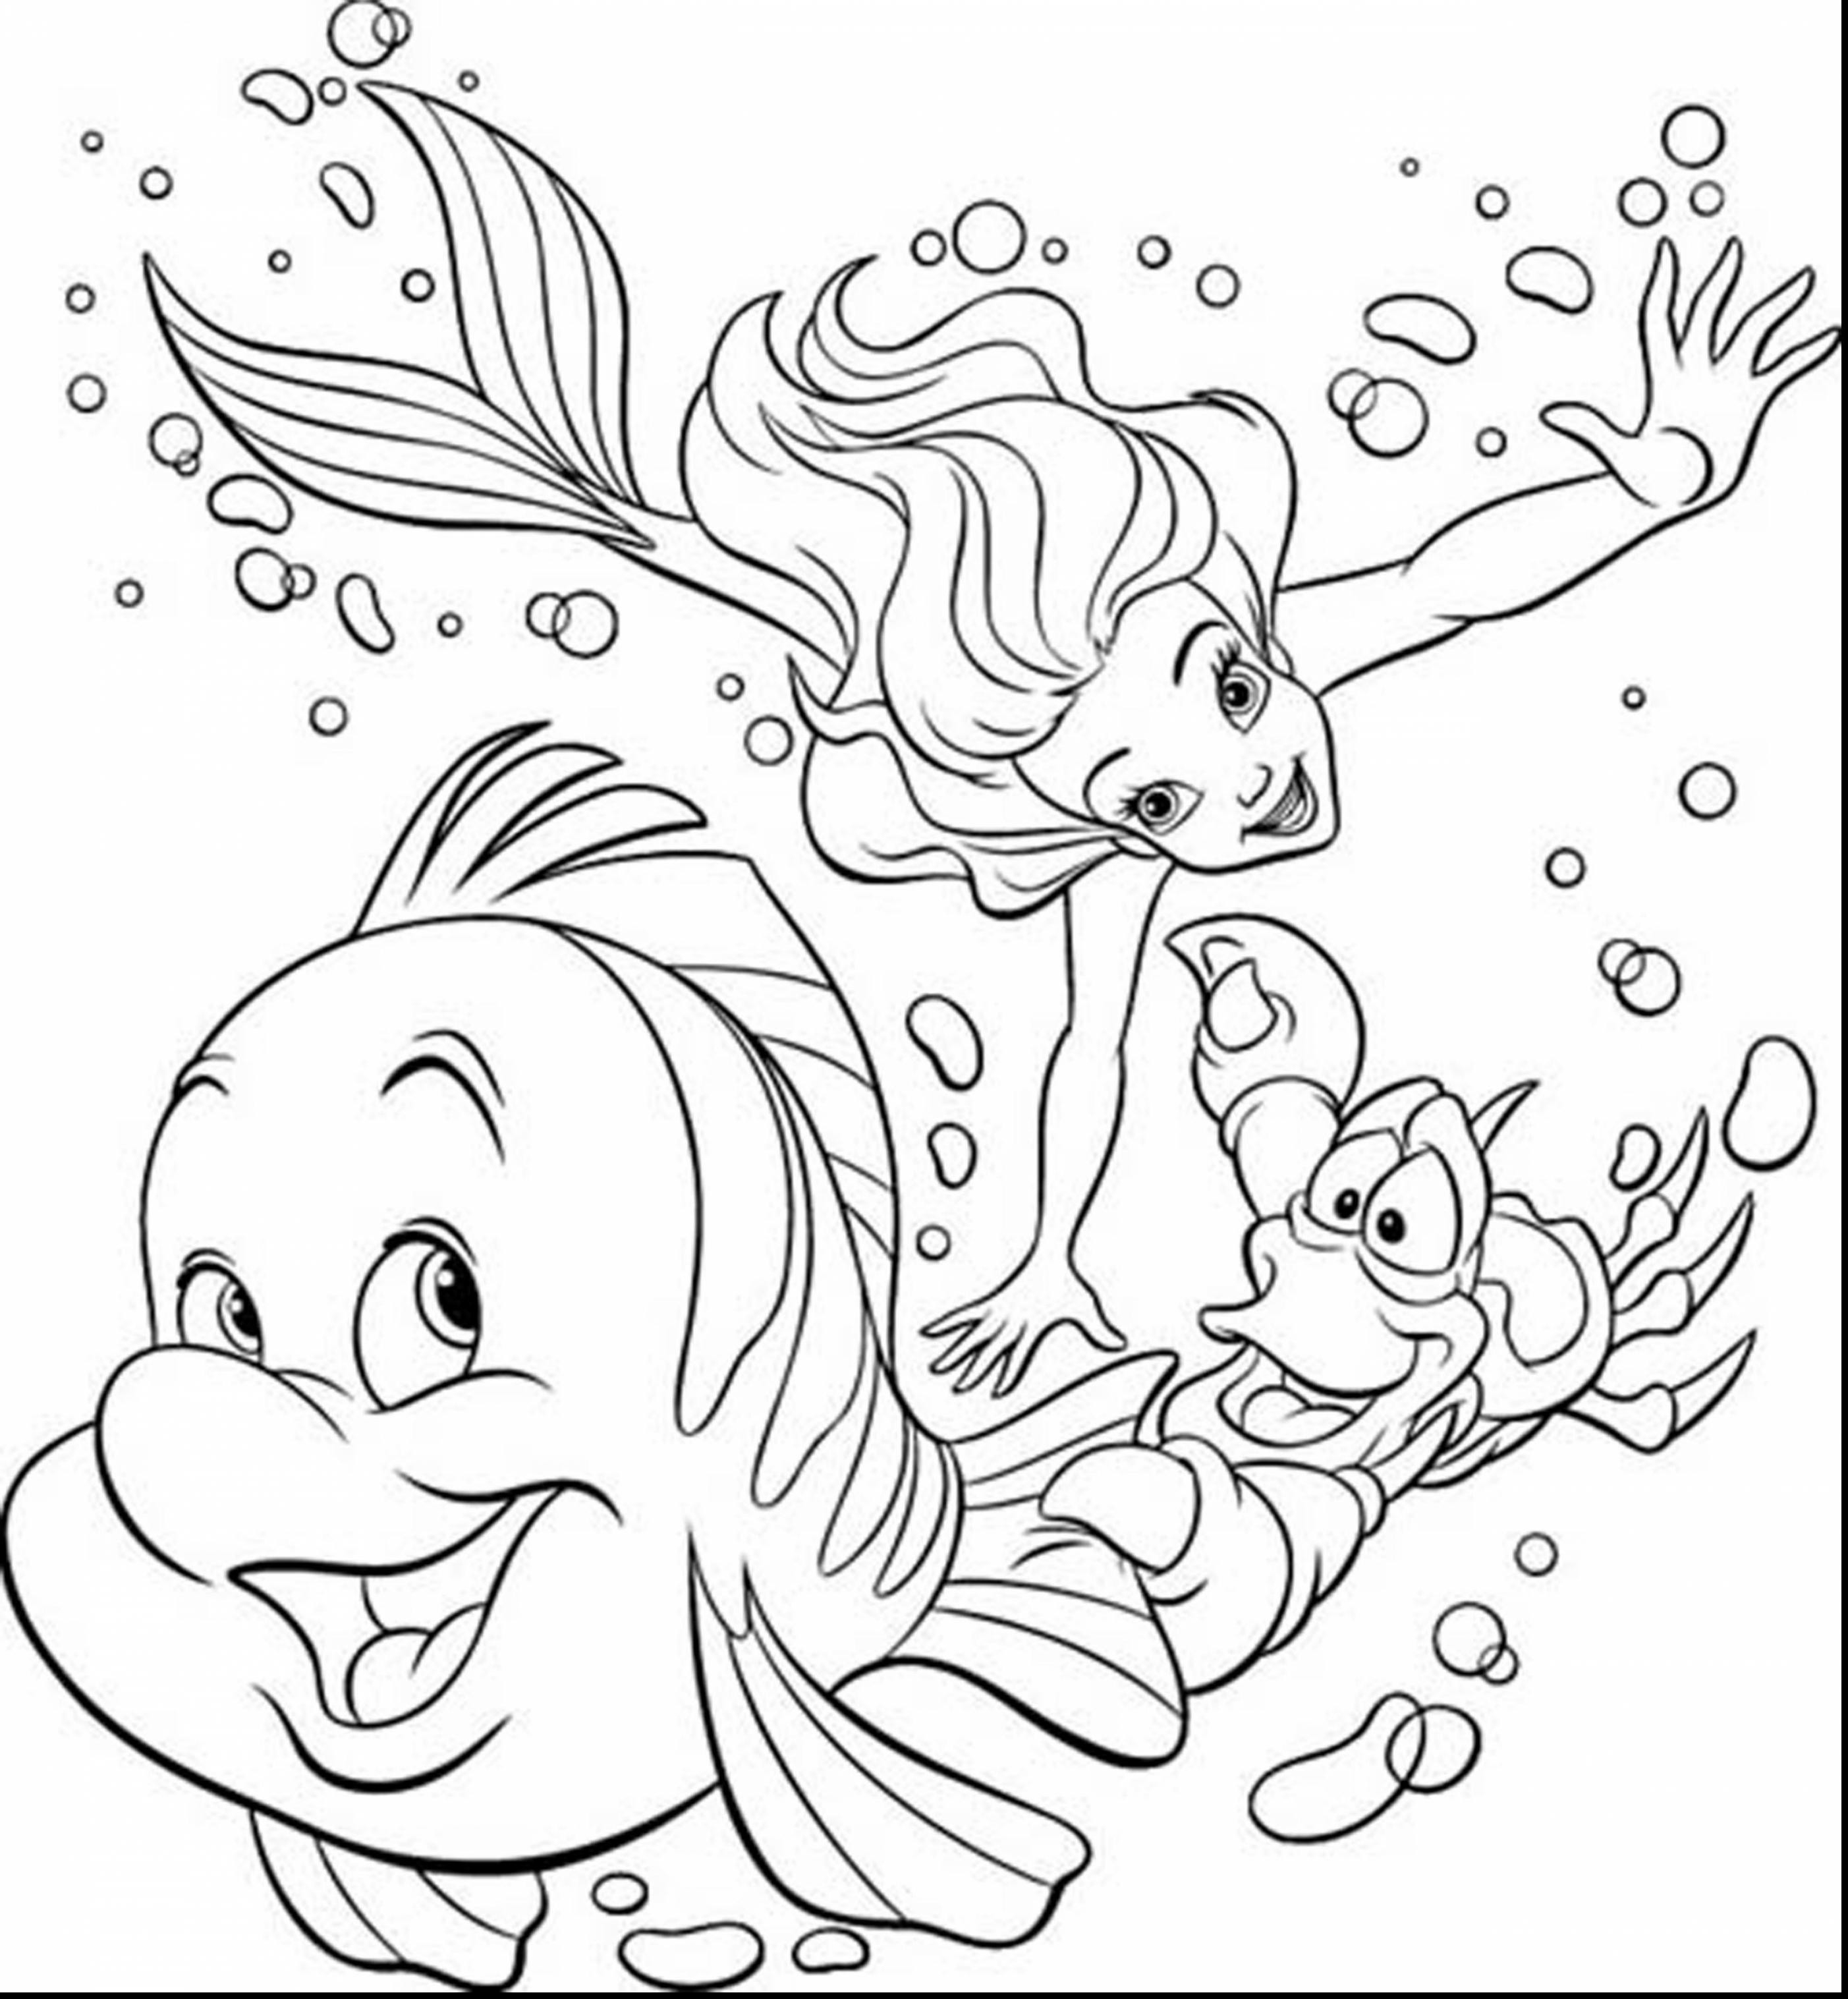 Coloring Pages : Coloring Pages Disney Free Printable Teen - Free Printable Princess Jasmine Coloring Pages